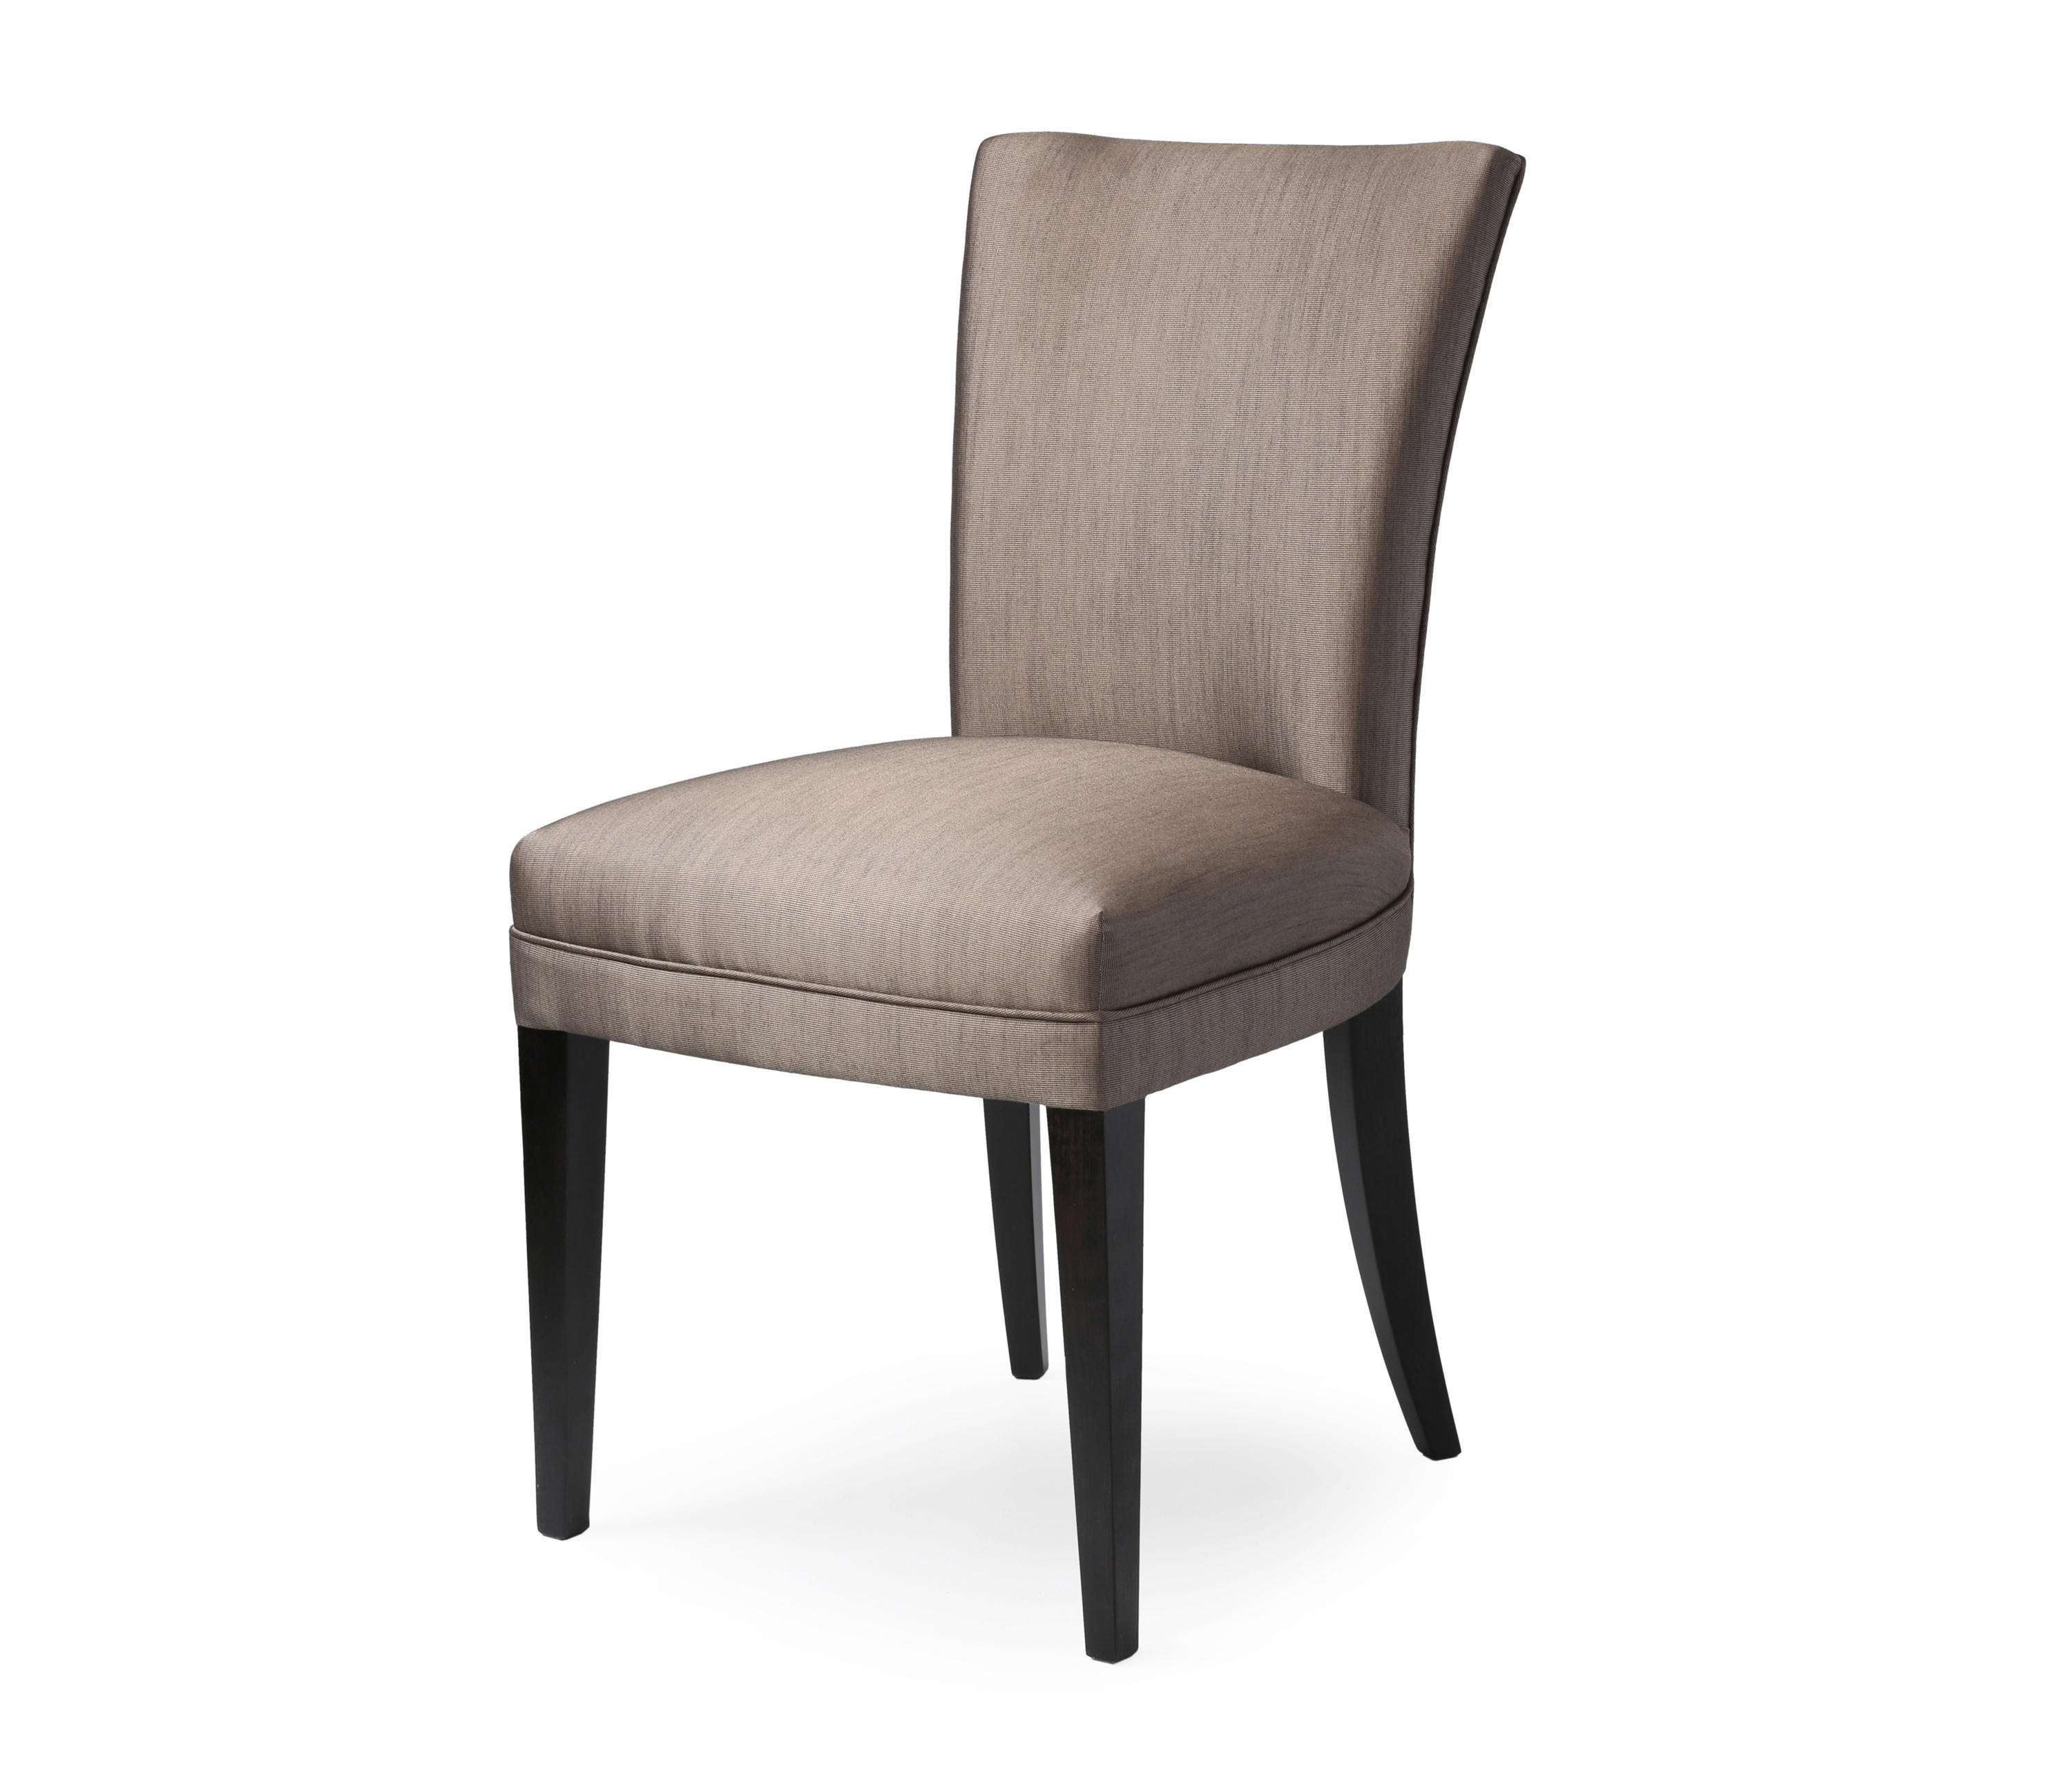 Paris dining chair restaurant chairs from the sofa for Restaurant furniture